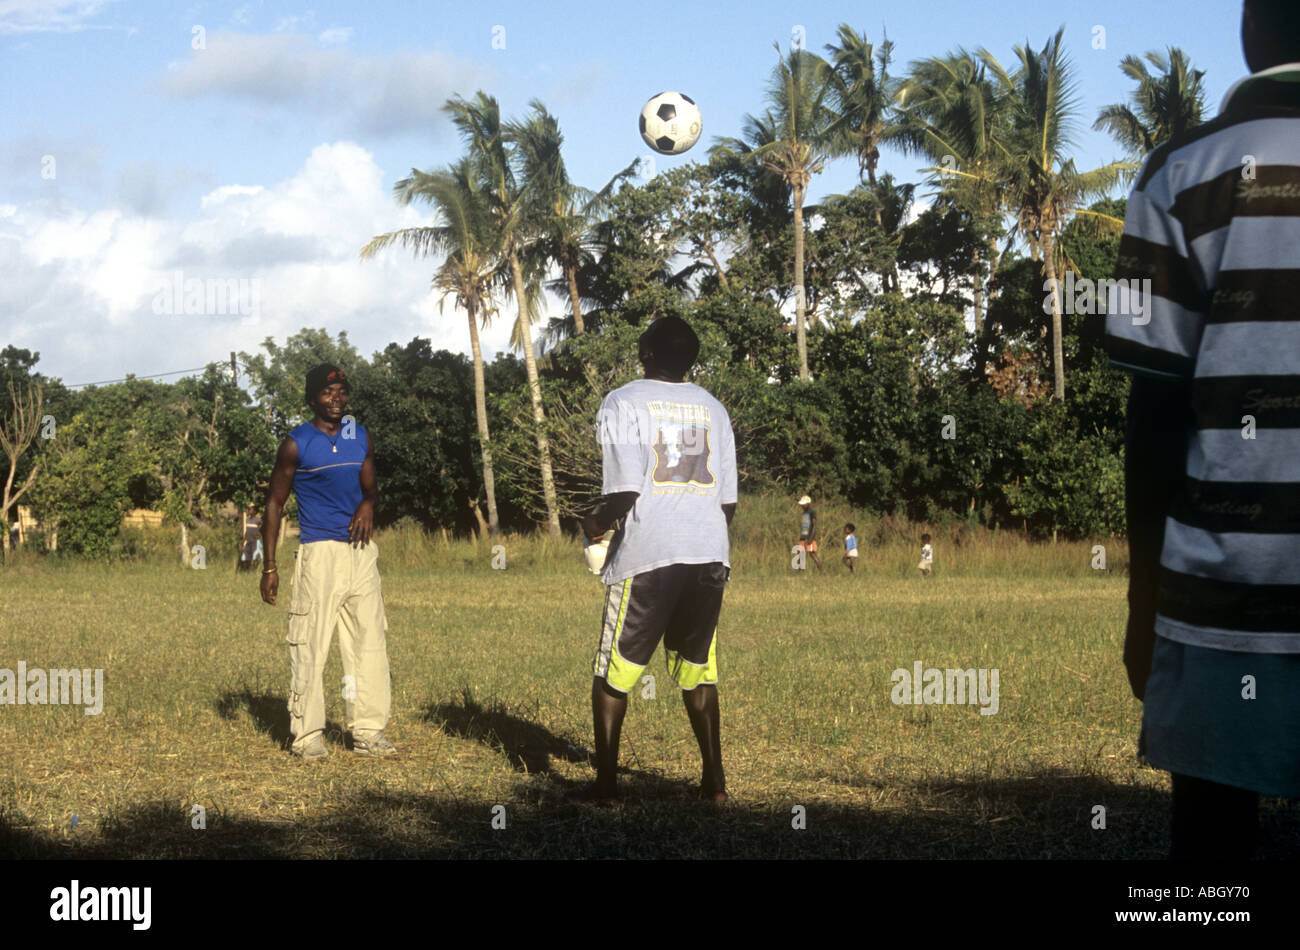 Three boys practicing soccer or football on Inhaca Island in bay of Maputo, Mozambique Stock Photo